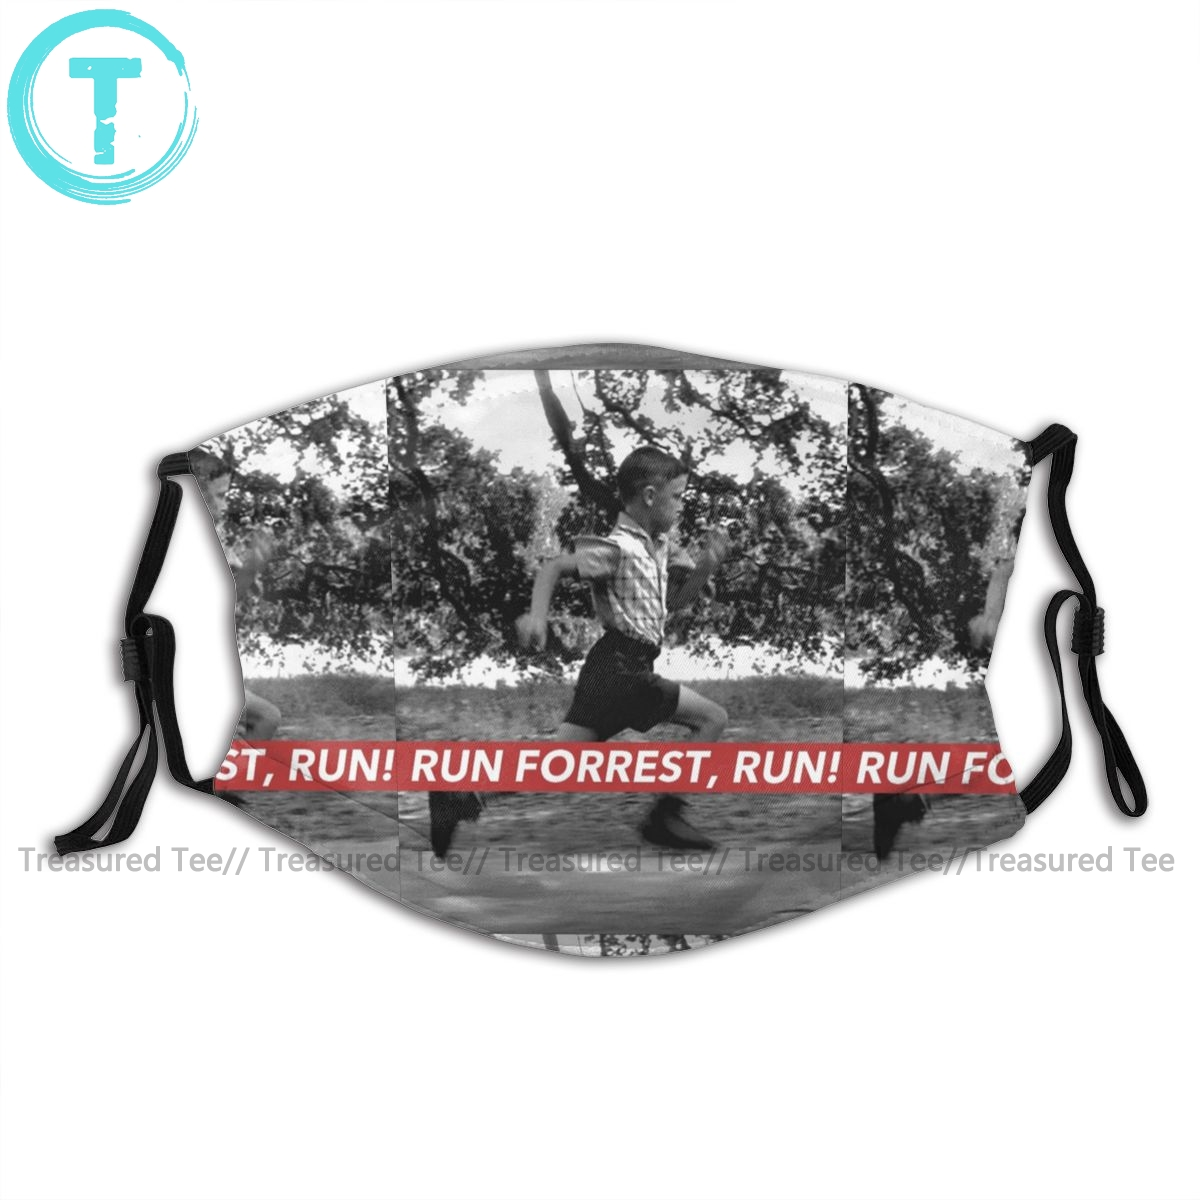 Forrest Gump Mouth Face Mask RUN FORREST RUN Facial Mask Fashion Funny With 2 Filters For Adult